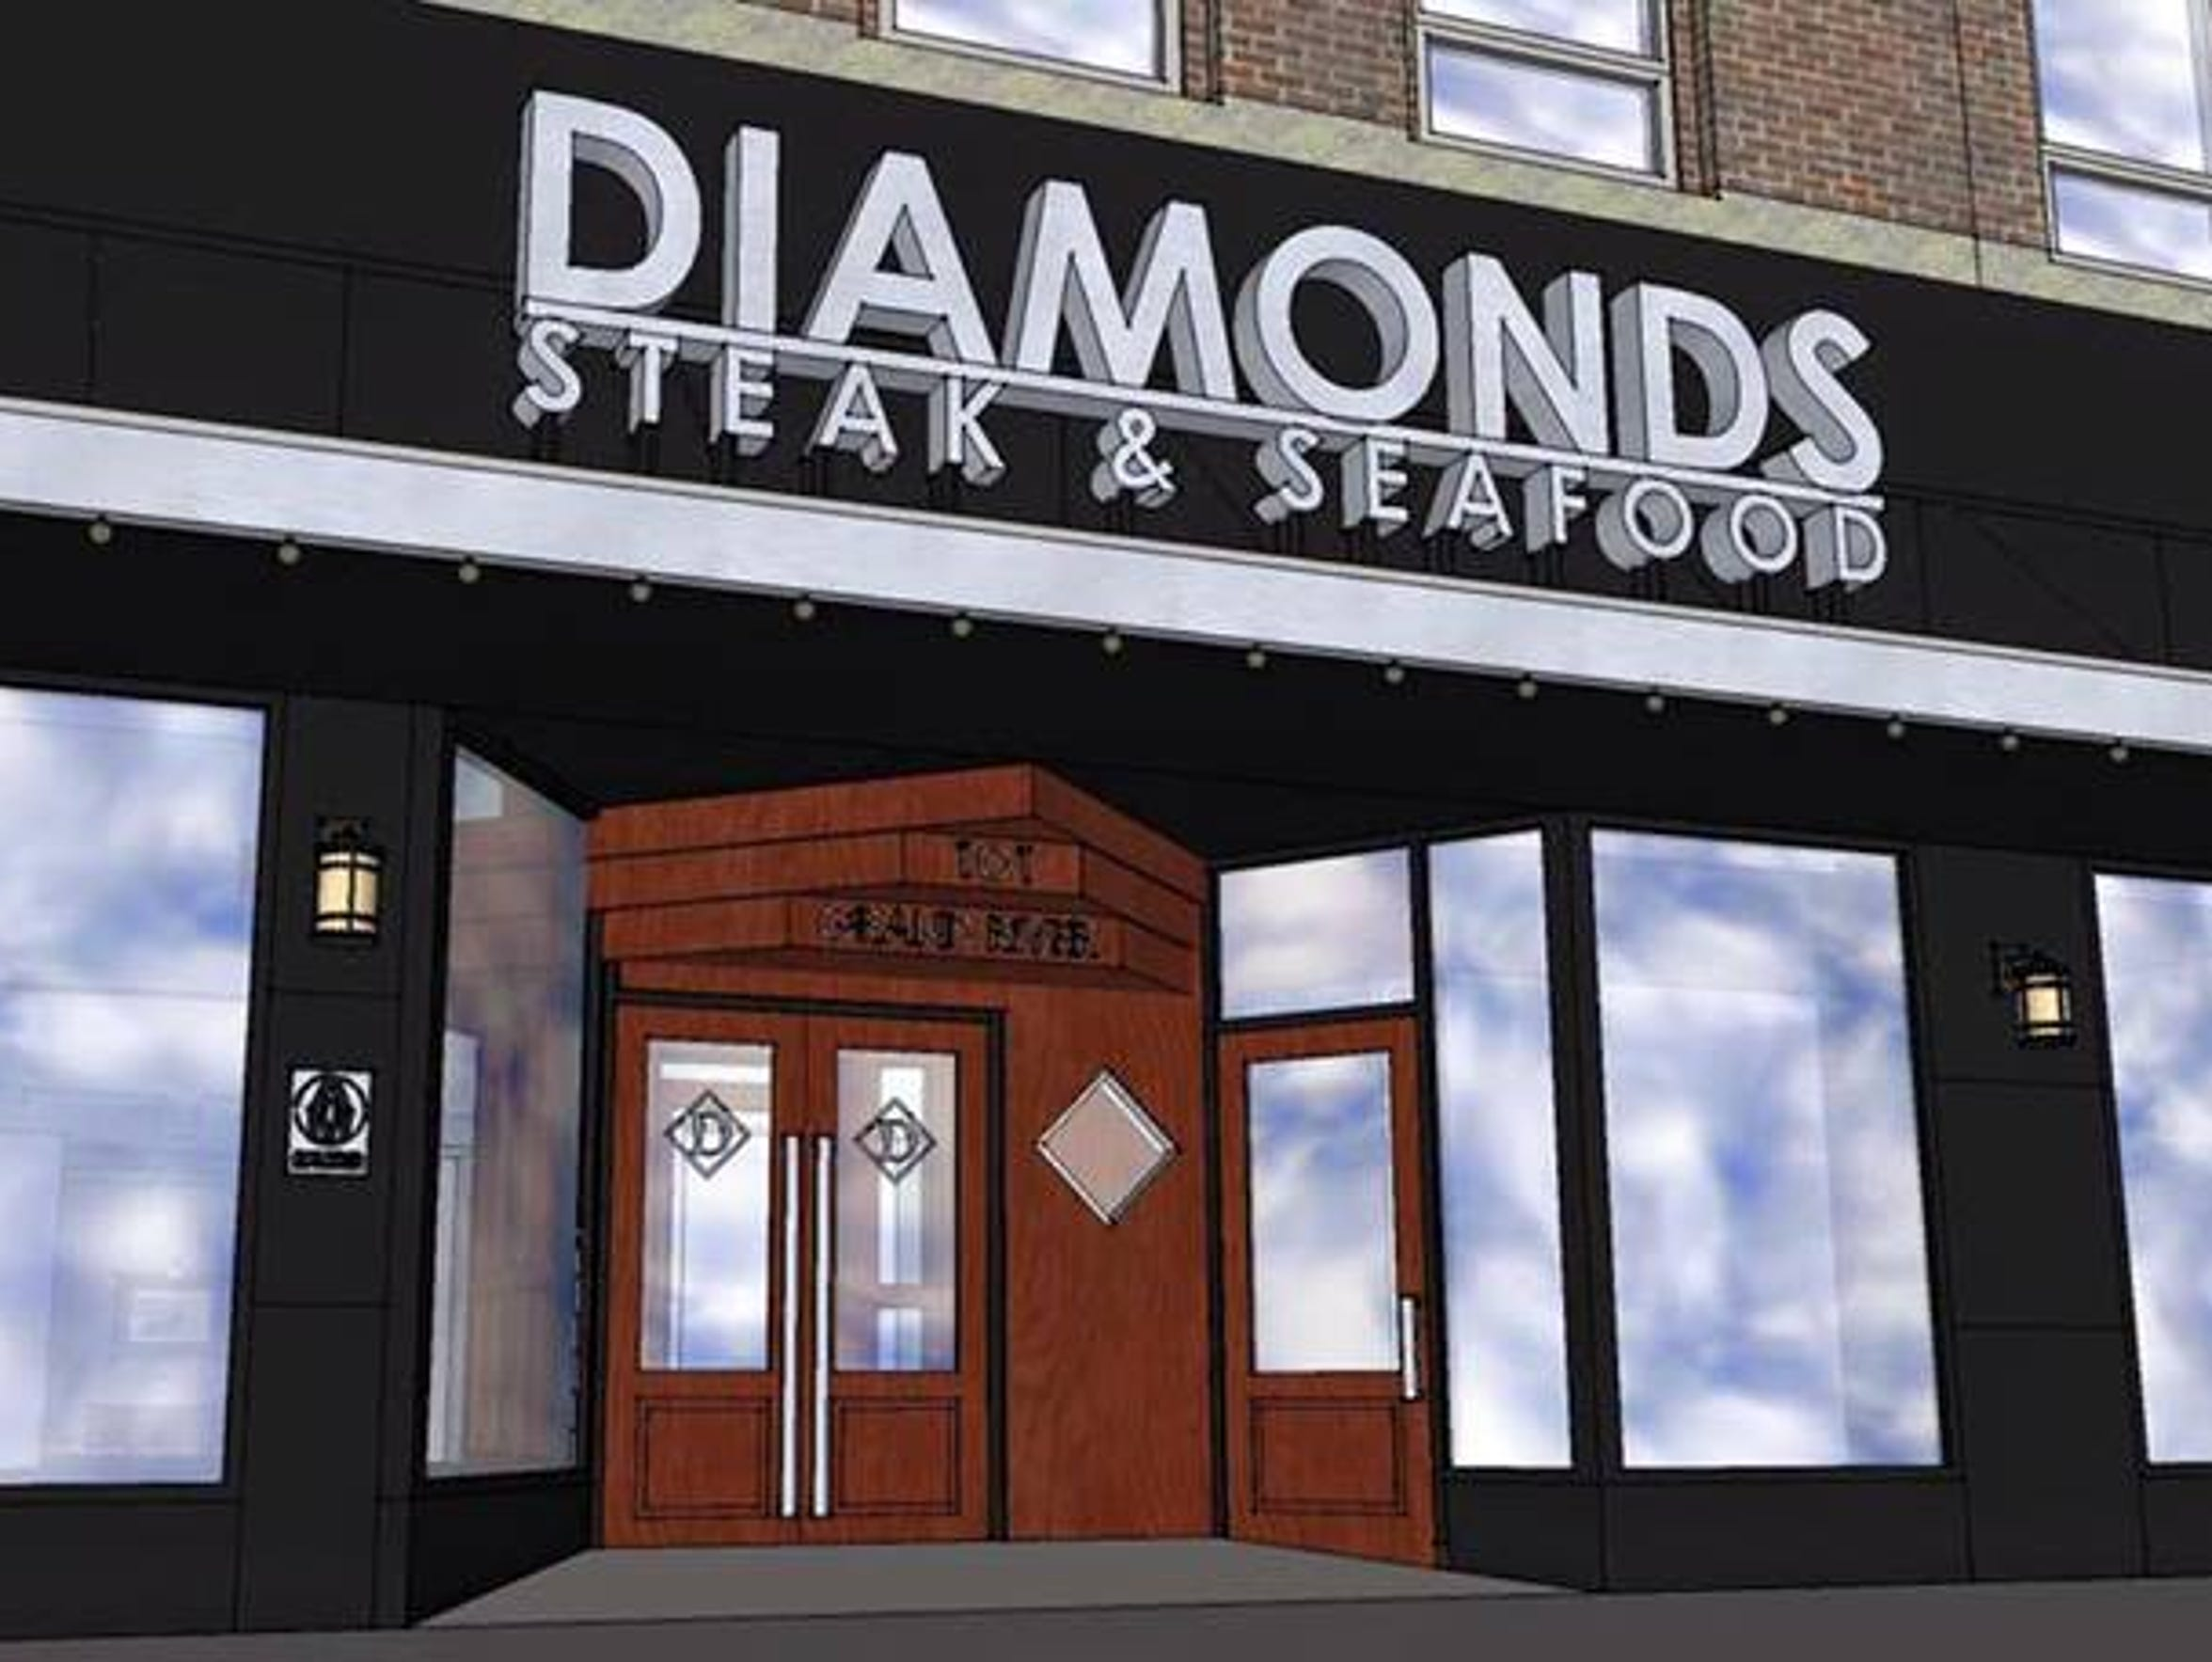 The new Diamonds Steak & Seafood is expected to open